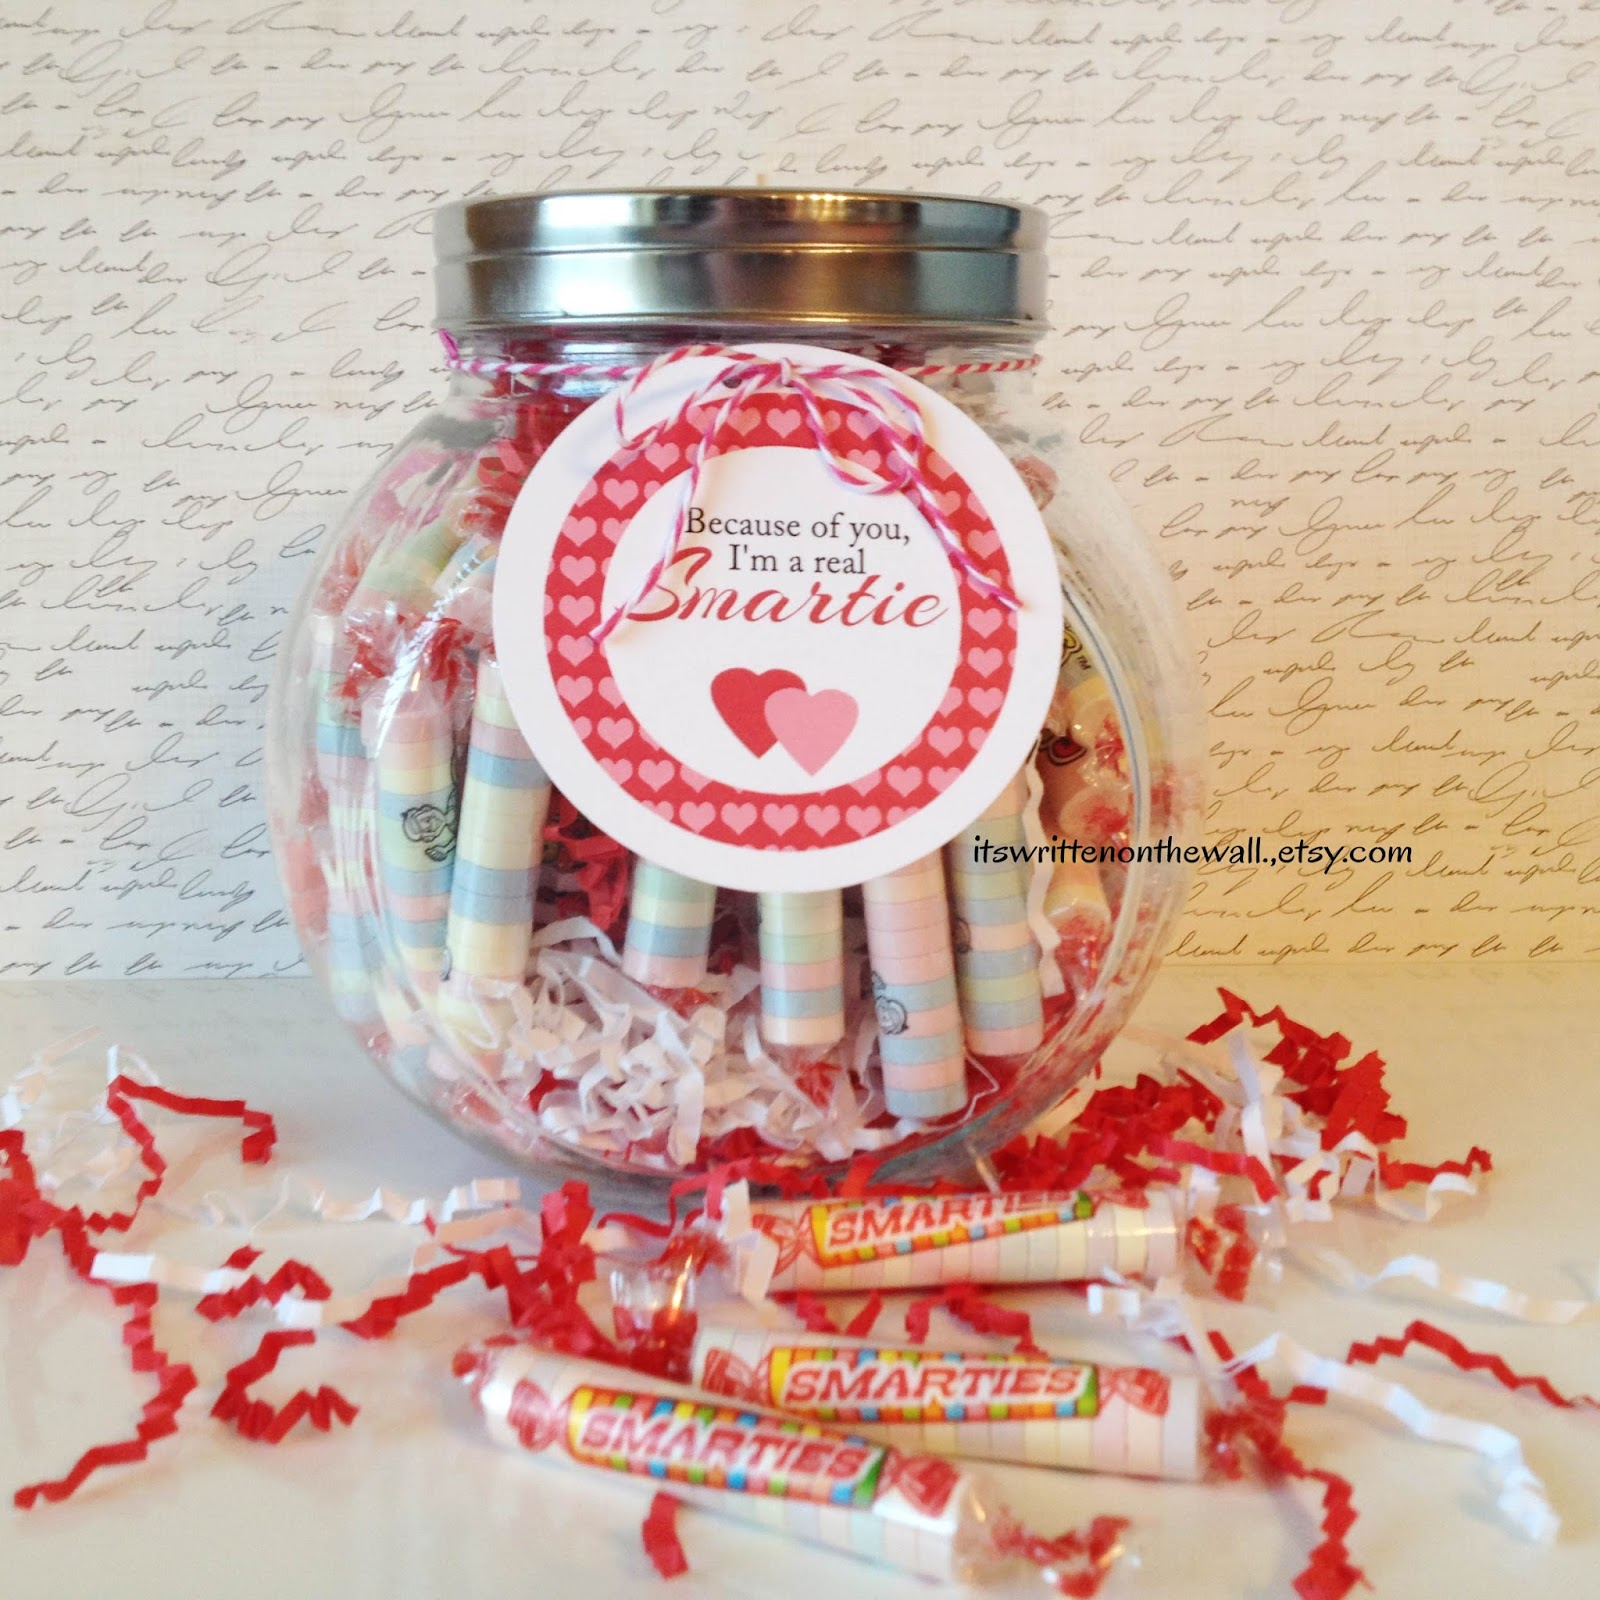 """It's Written on the Wall: """"Because of you, I'm a Smartie Valentine's Day Teacher Appreciation ..."""